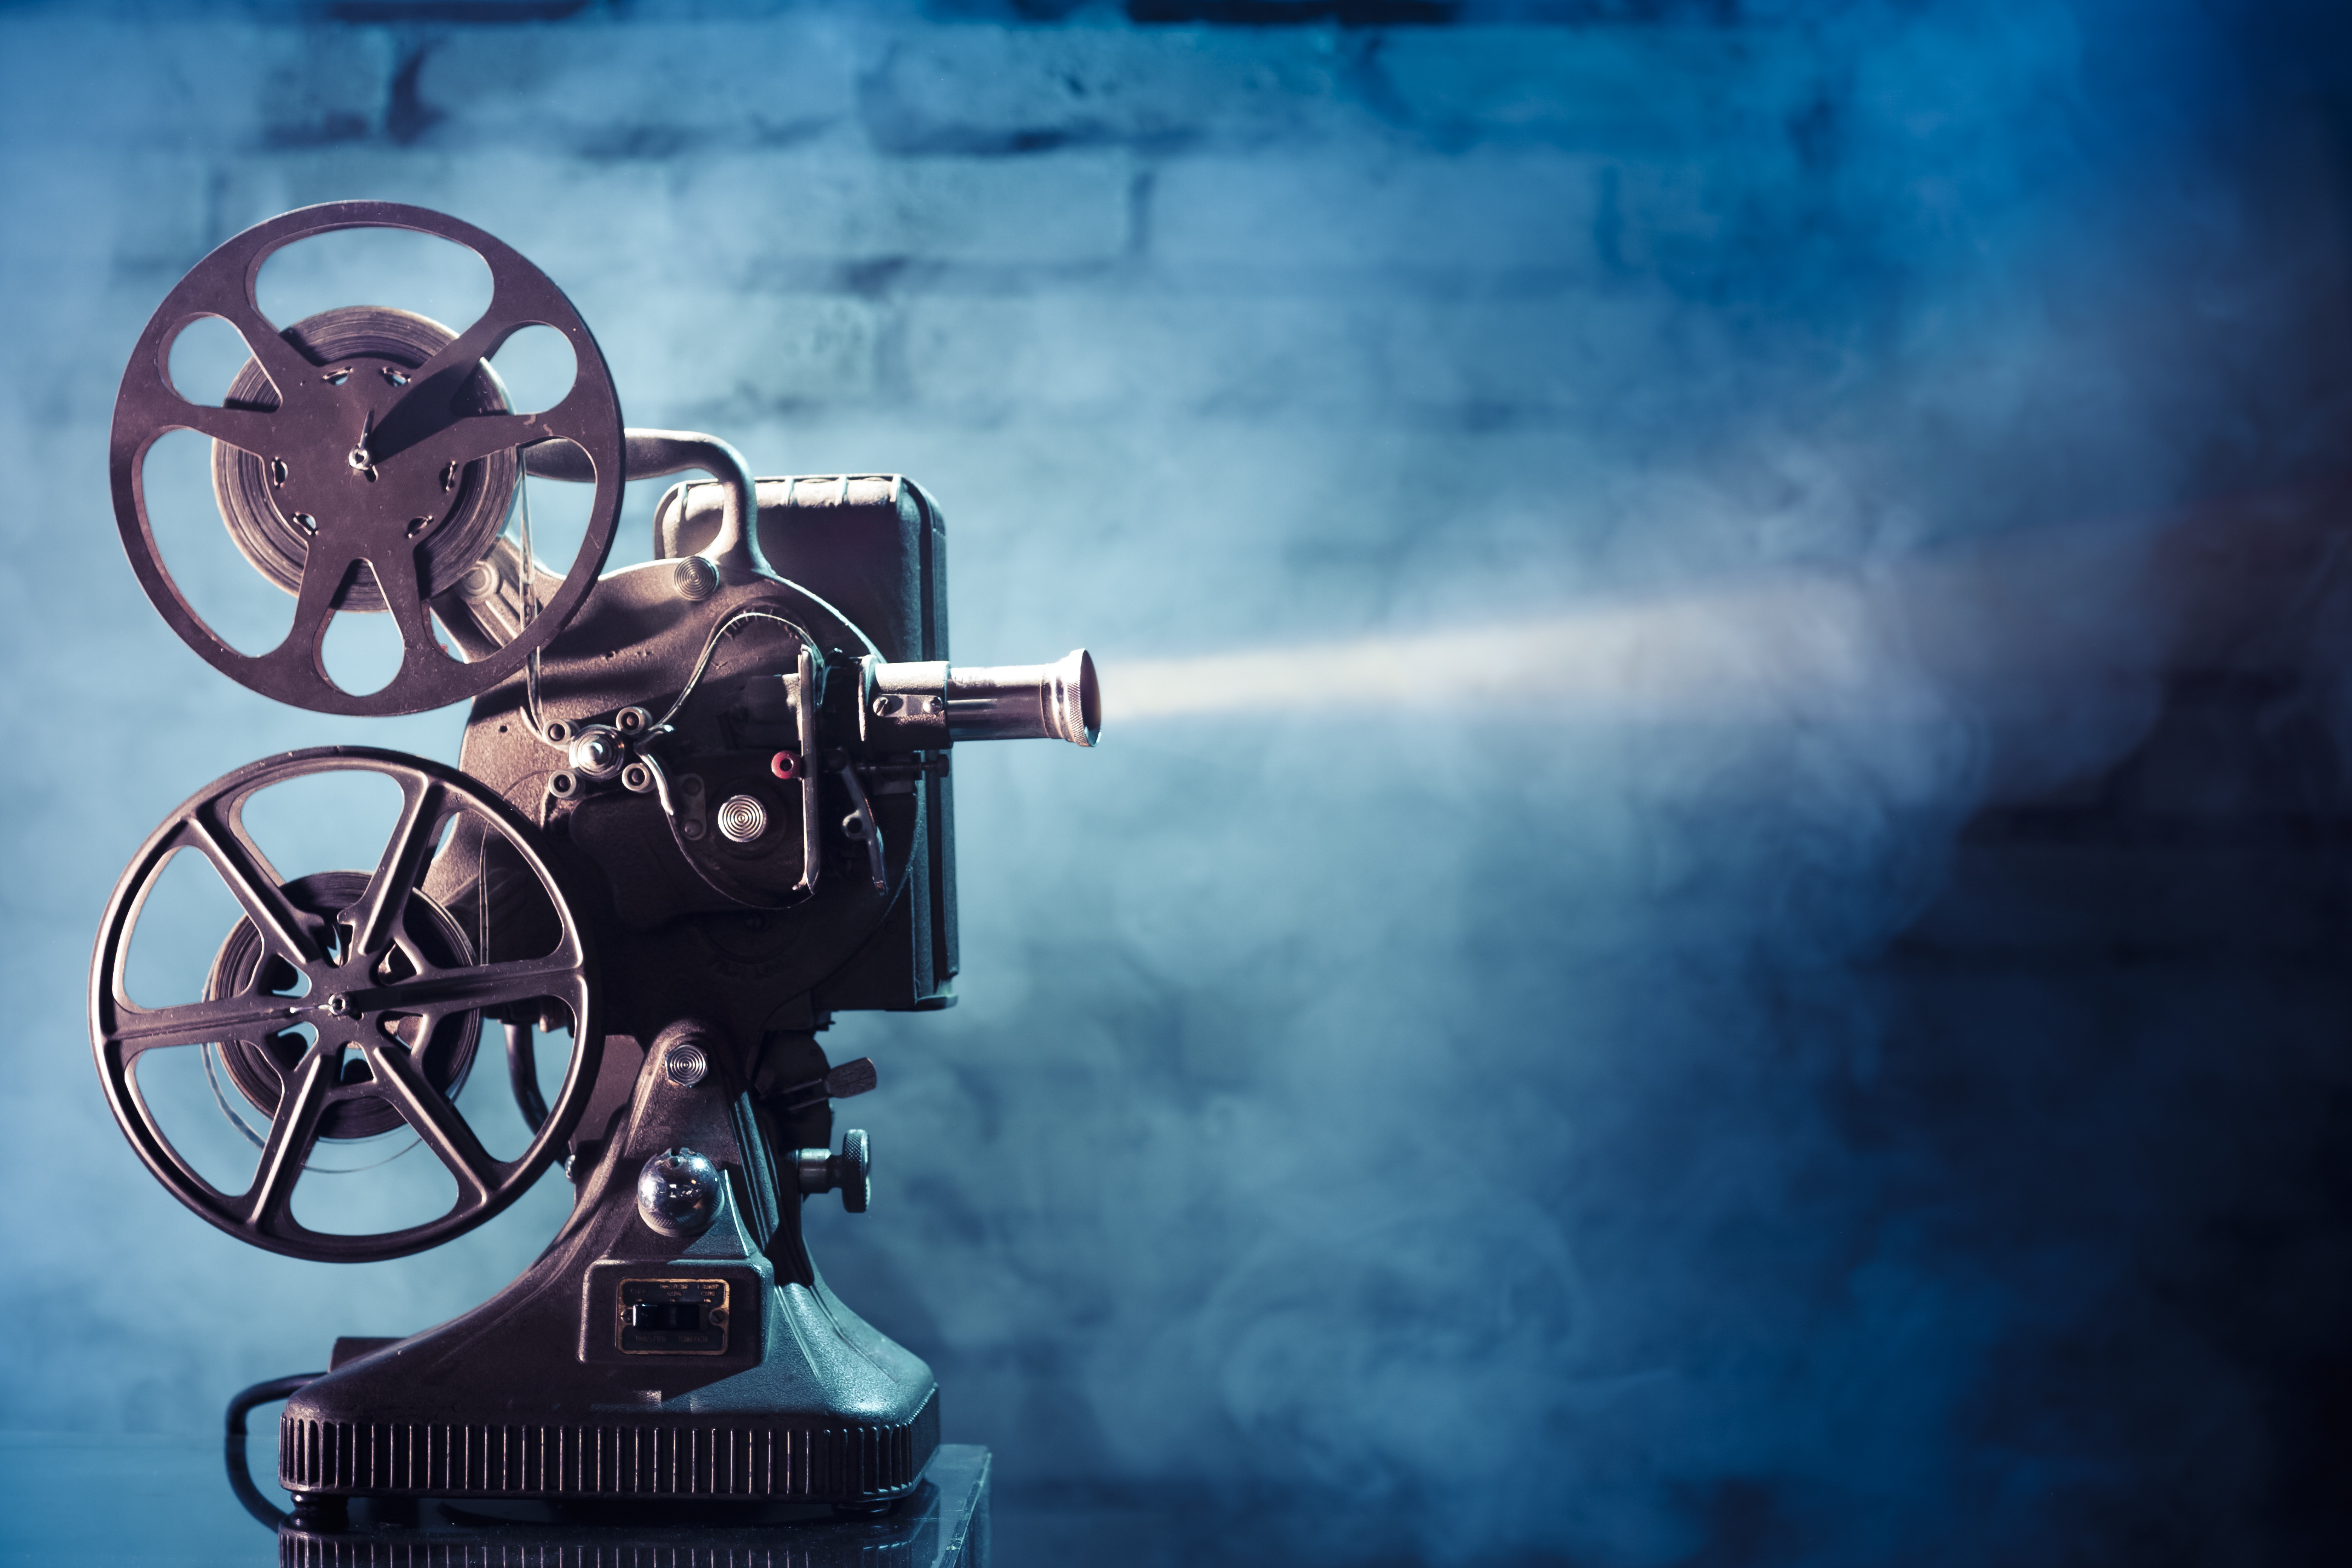 Dramatic movie projector